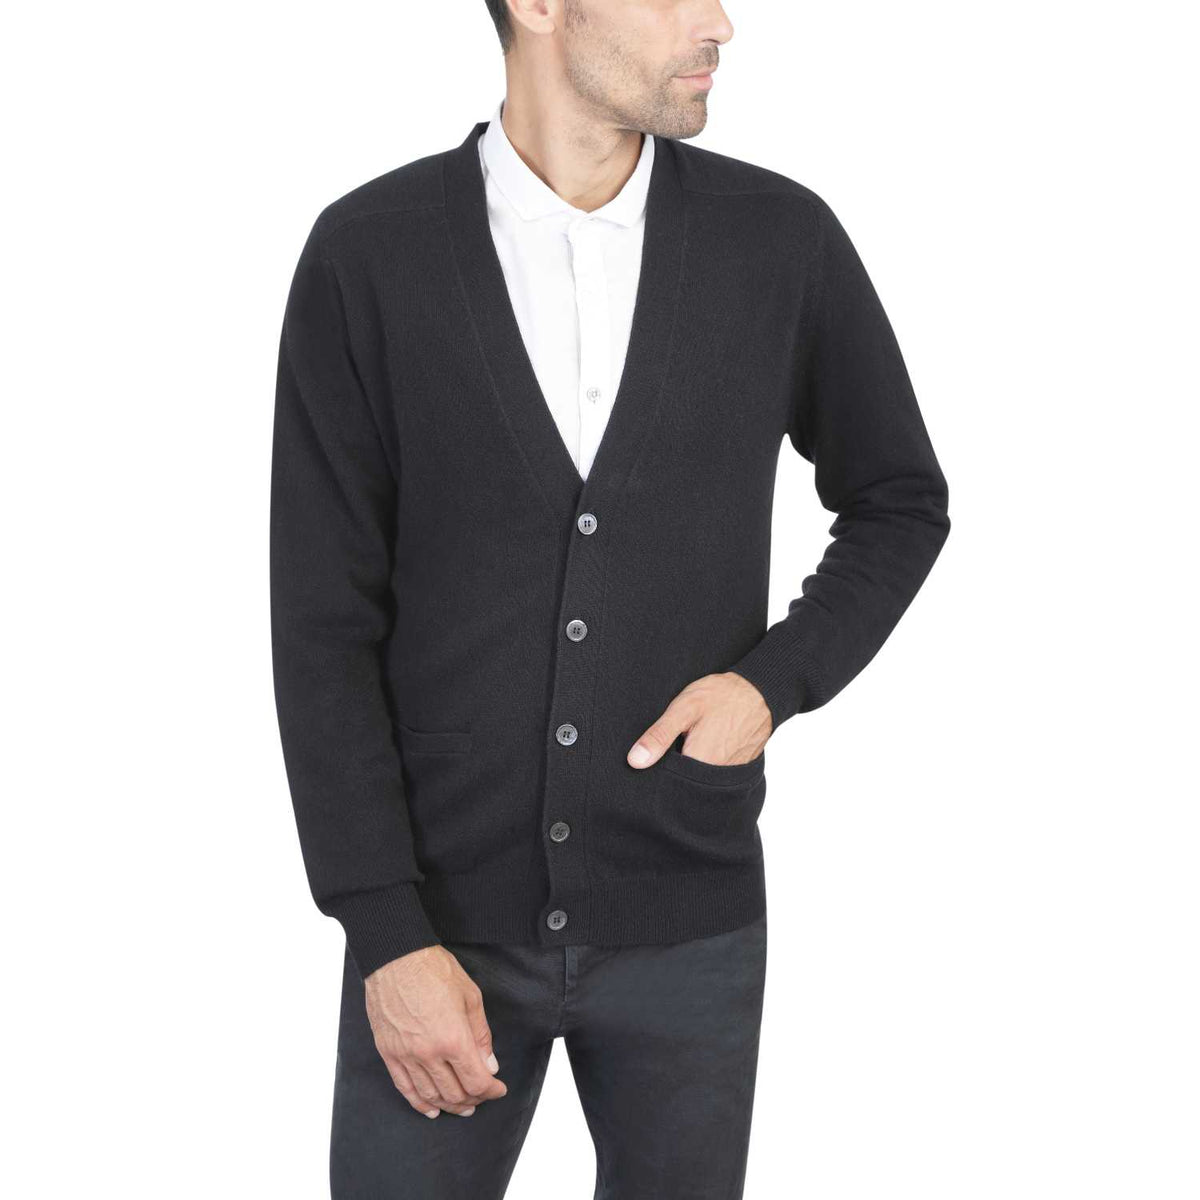 Mens Black Cashmere Cardigan | Front | Shop at The Cashmere Choice | London